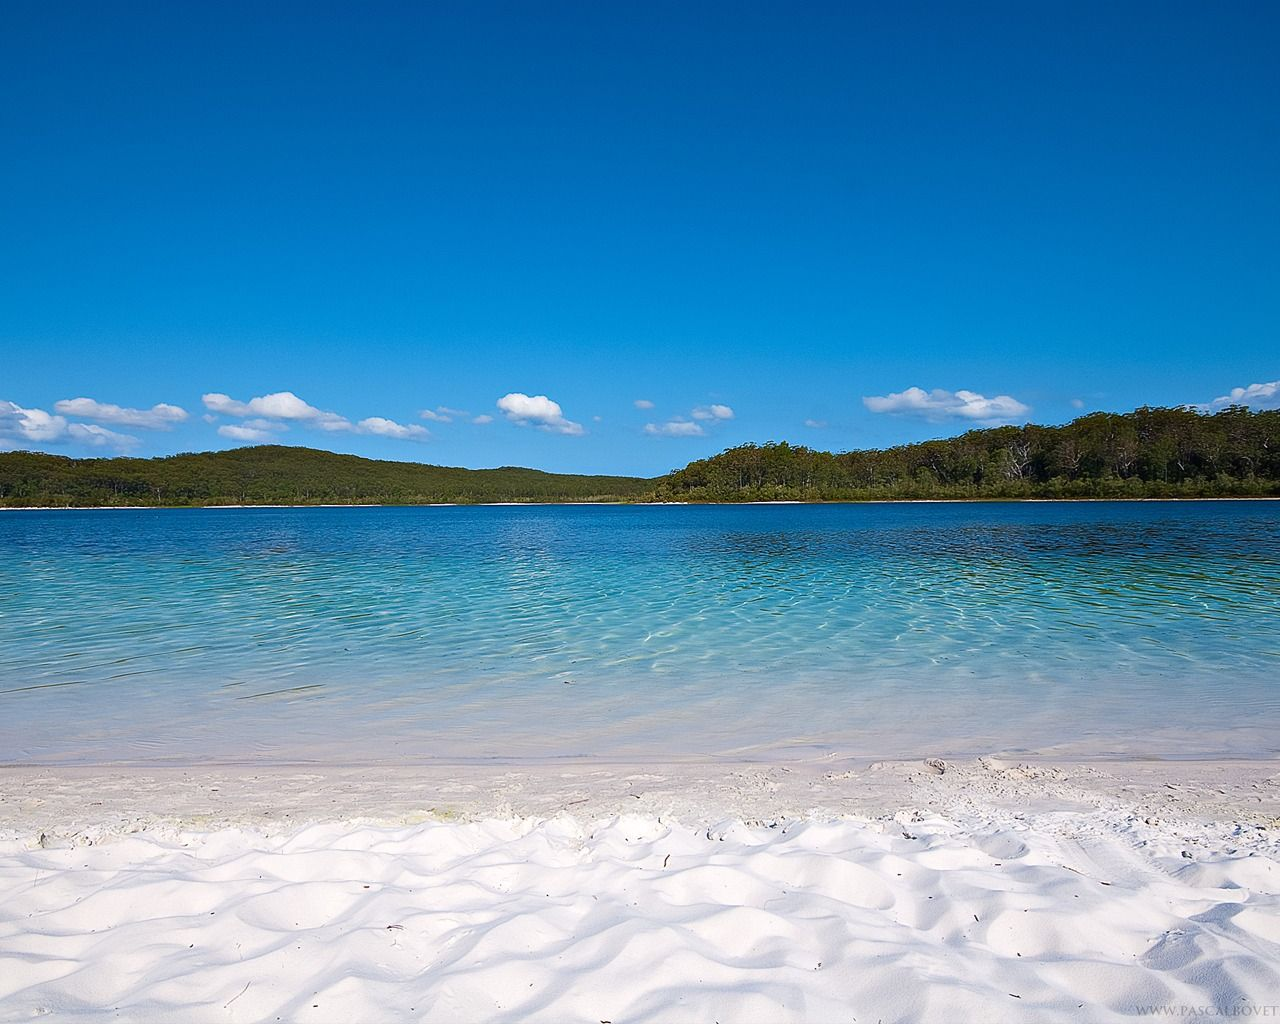 most peaceful place on earth <3 mckenzie lake, fraser island, au